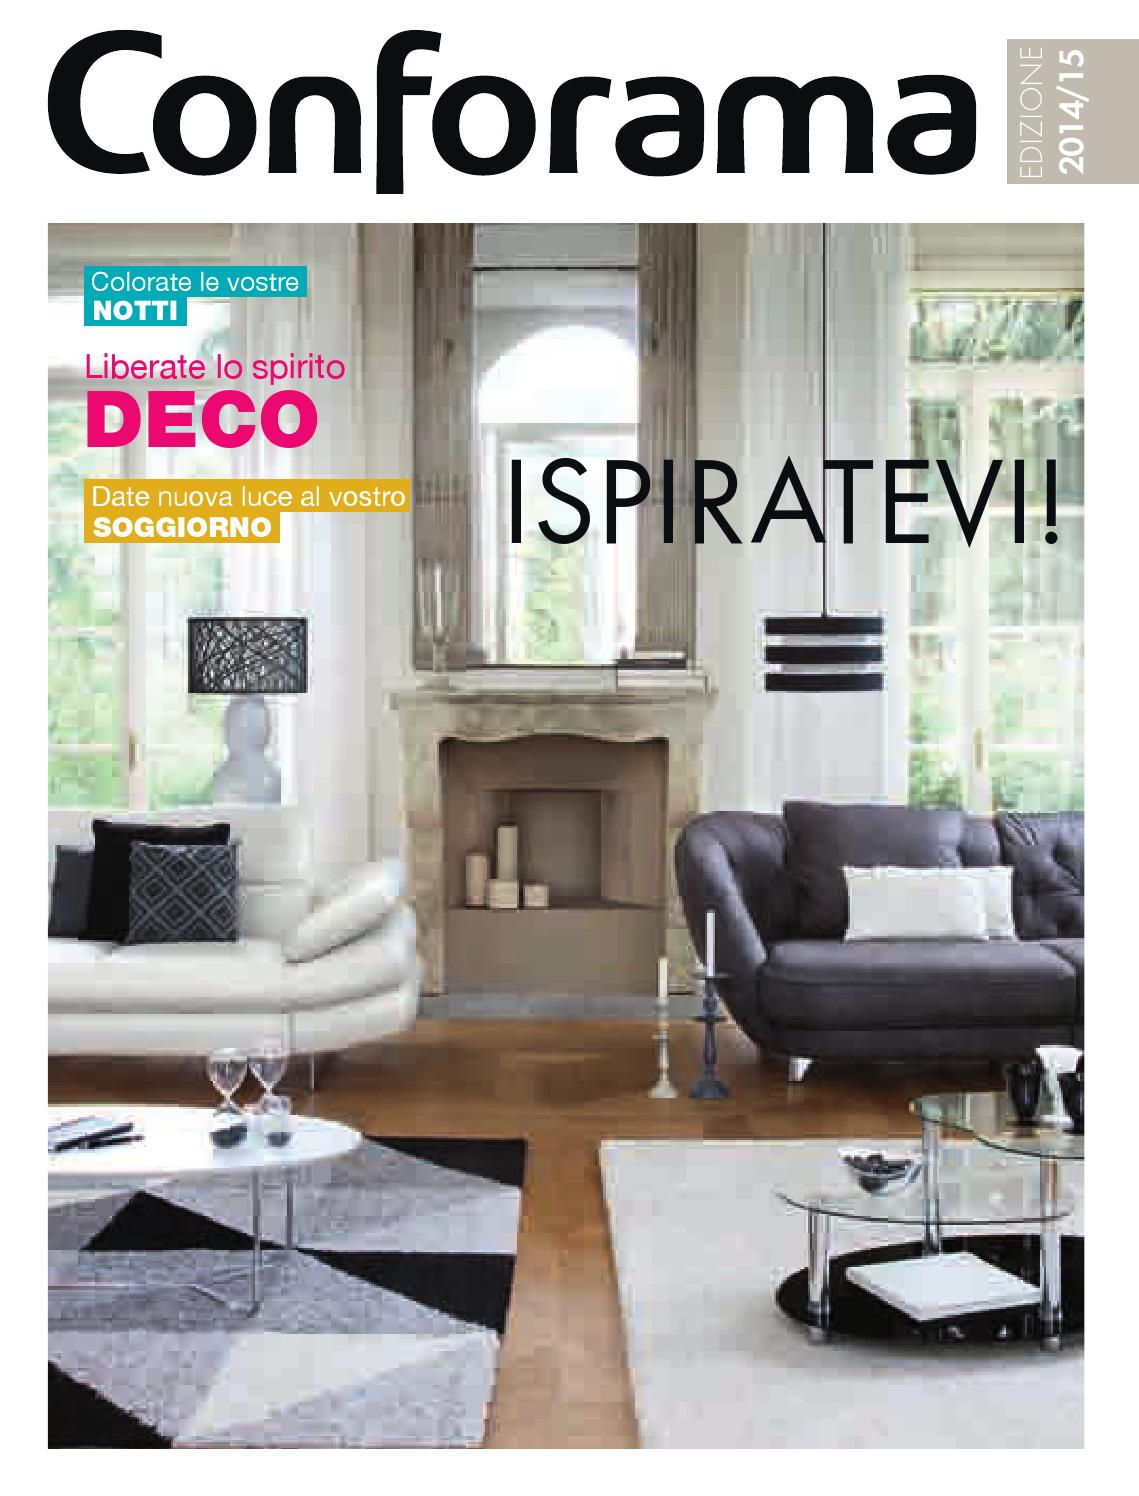 Conforama catalogo generale2014 by Mobilpro - issuu